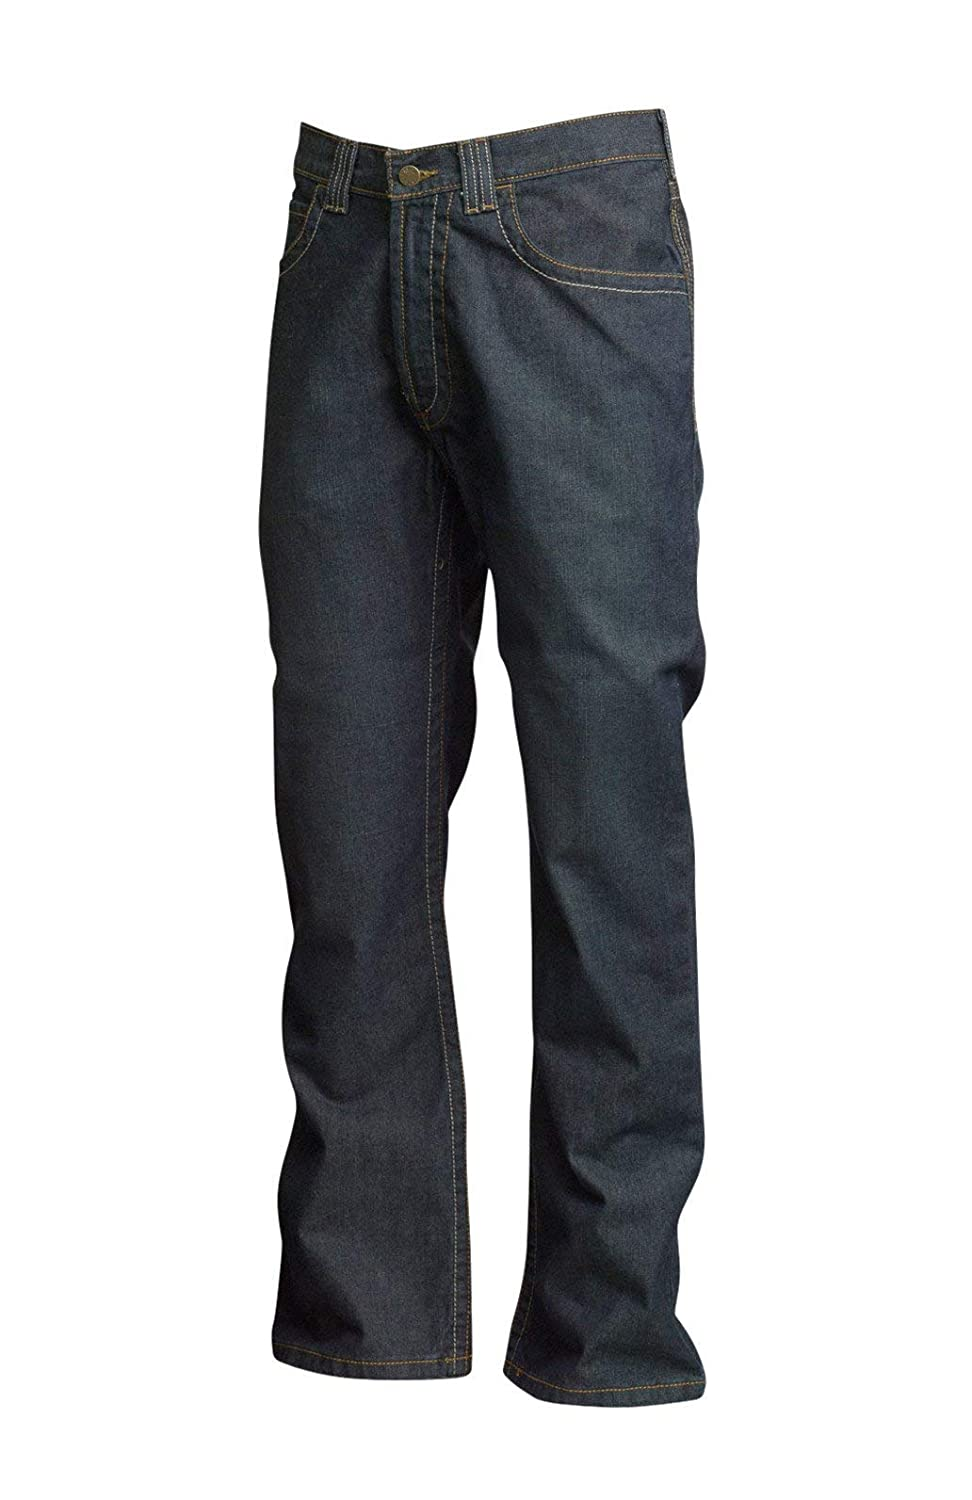 Dirty Washed Denim 28 x 28 Lapco FR P-INDM10 28X28 100/% Cotton Flame-Resistant Modern Jeans